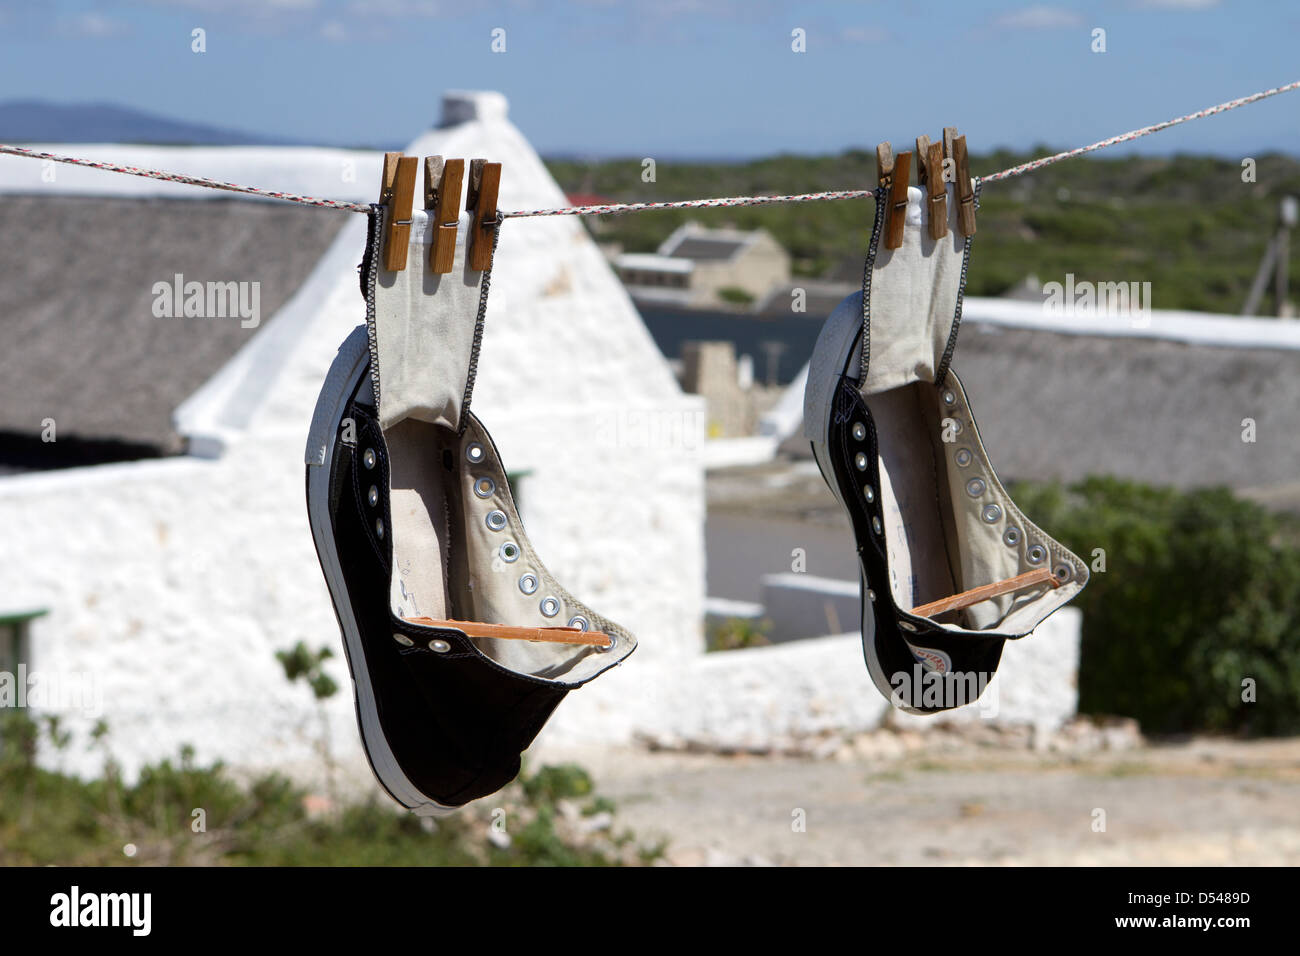 Converse All Stars hanging out to dry. - Stock Image